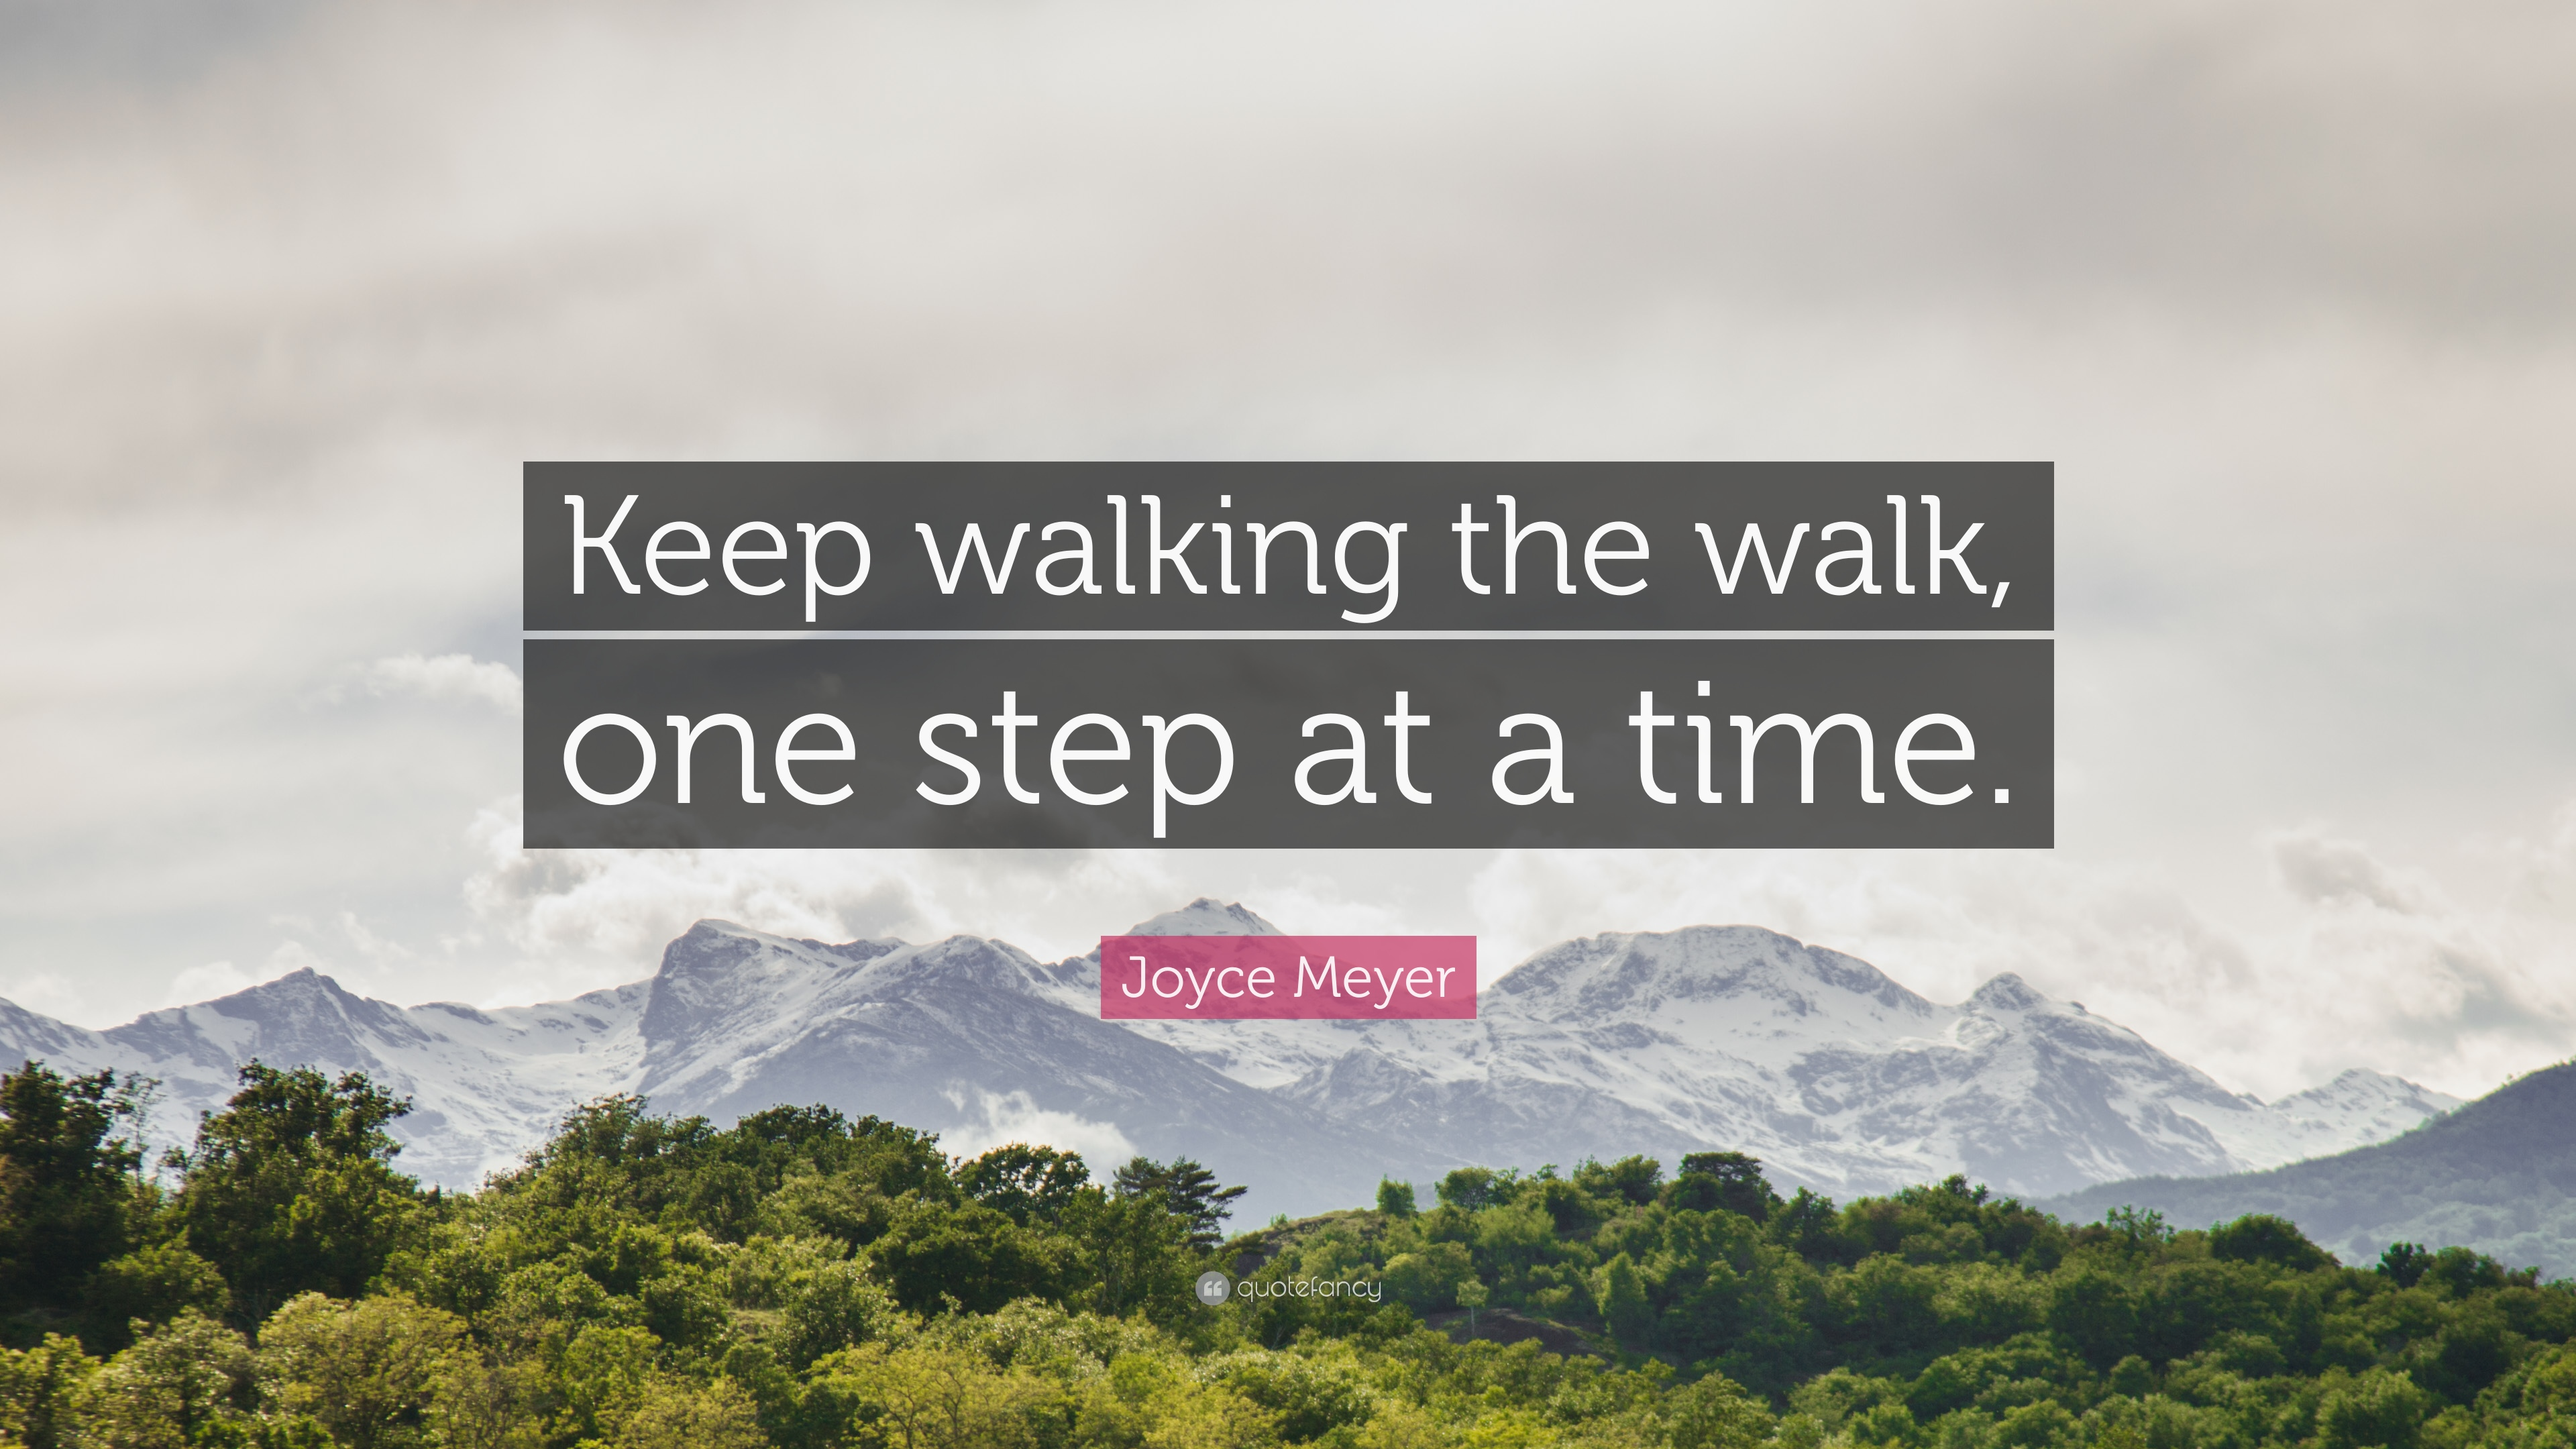 Joyce Meyer Quote Keep Walking The Walk One Step At A Time 12